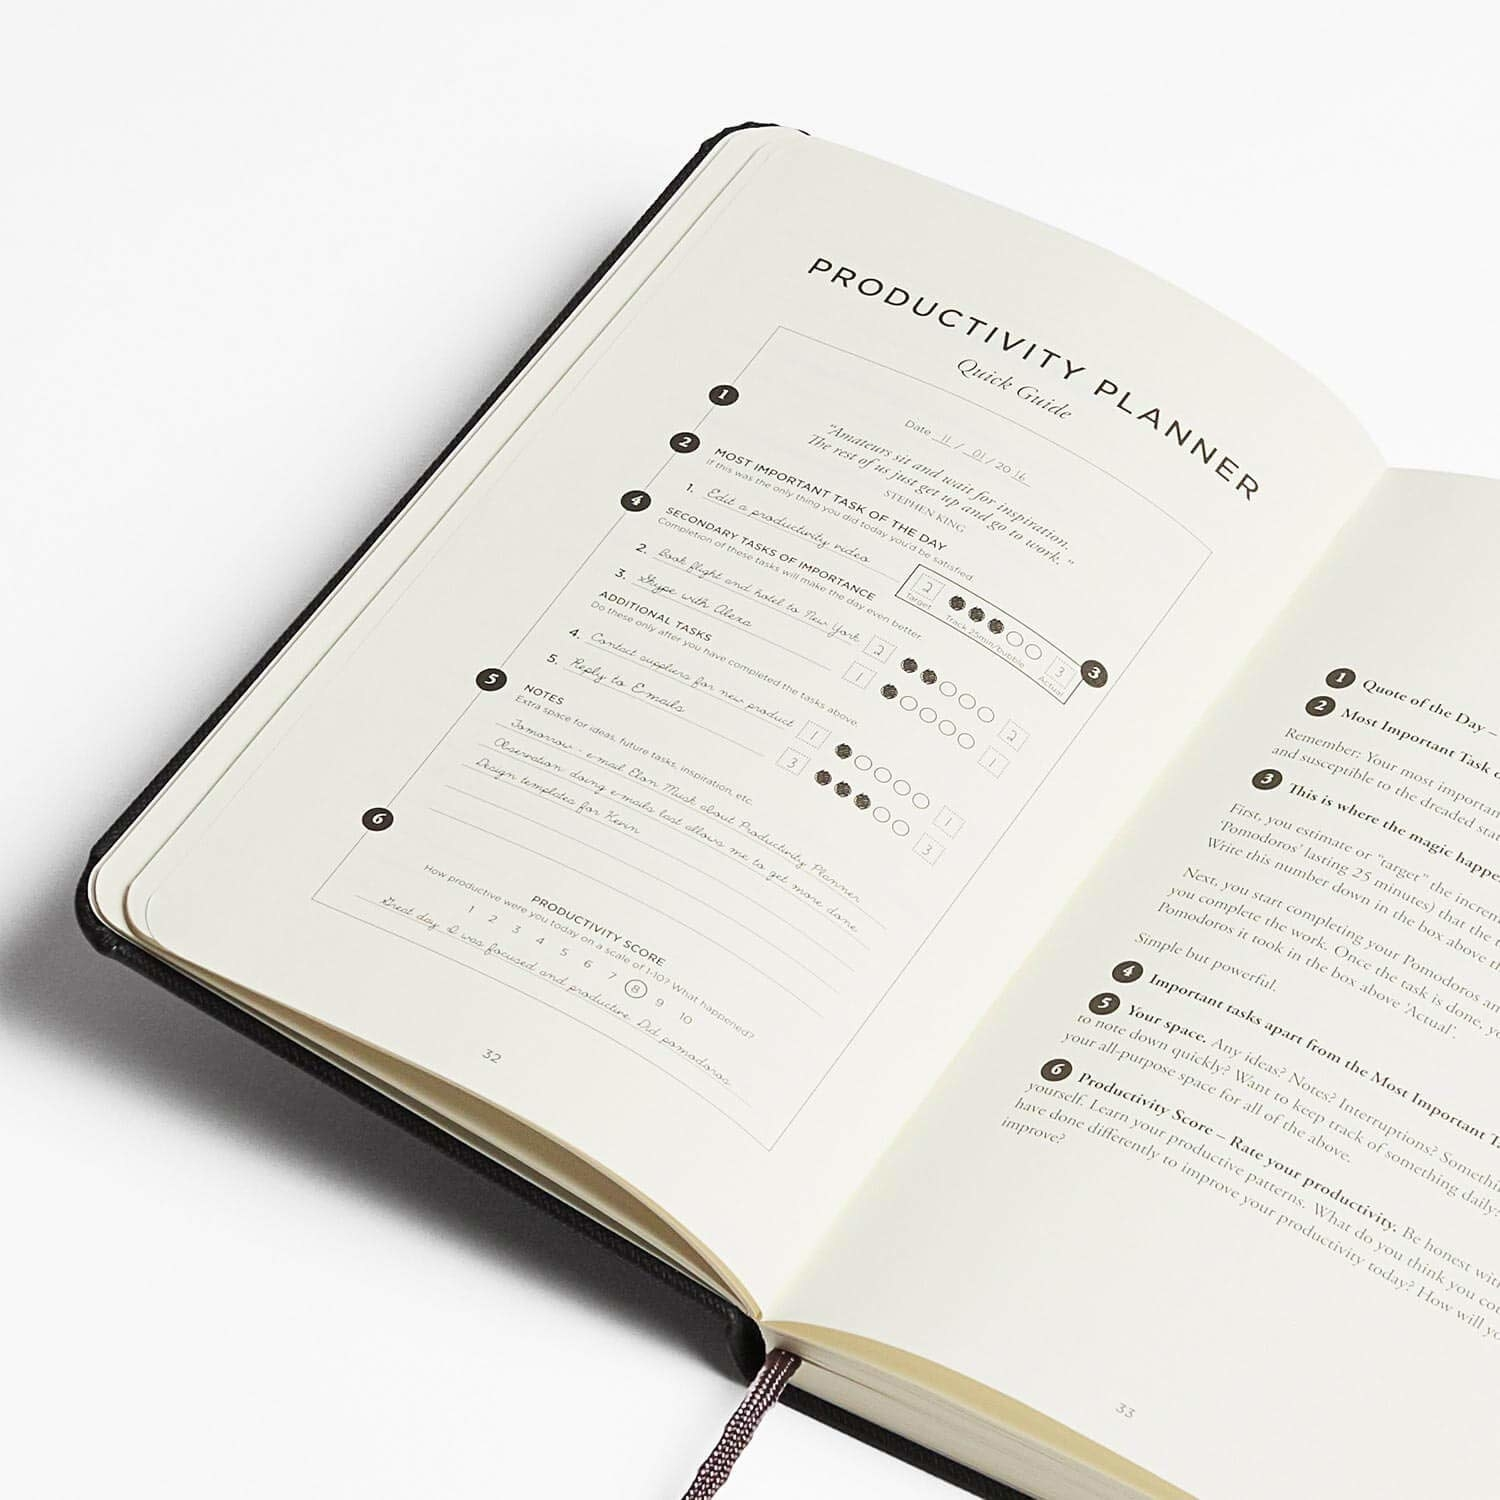 an open productivity planner with one of its pages on display